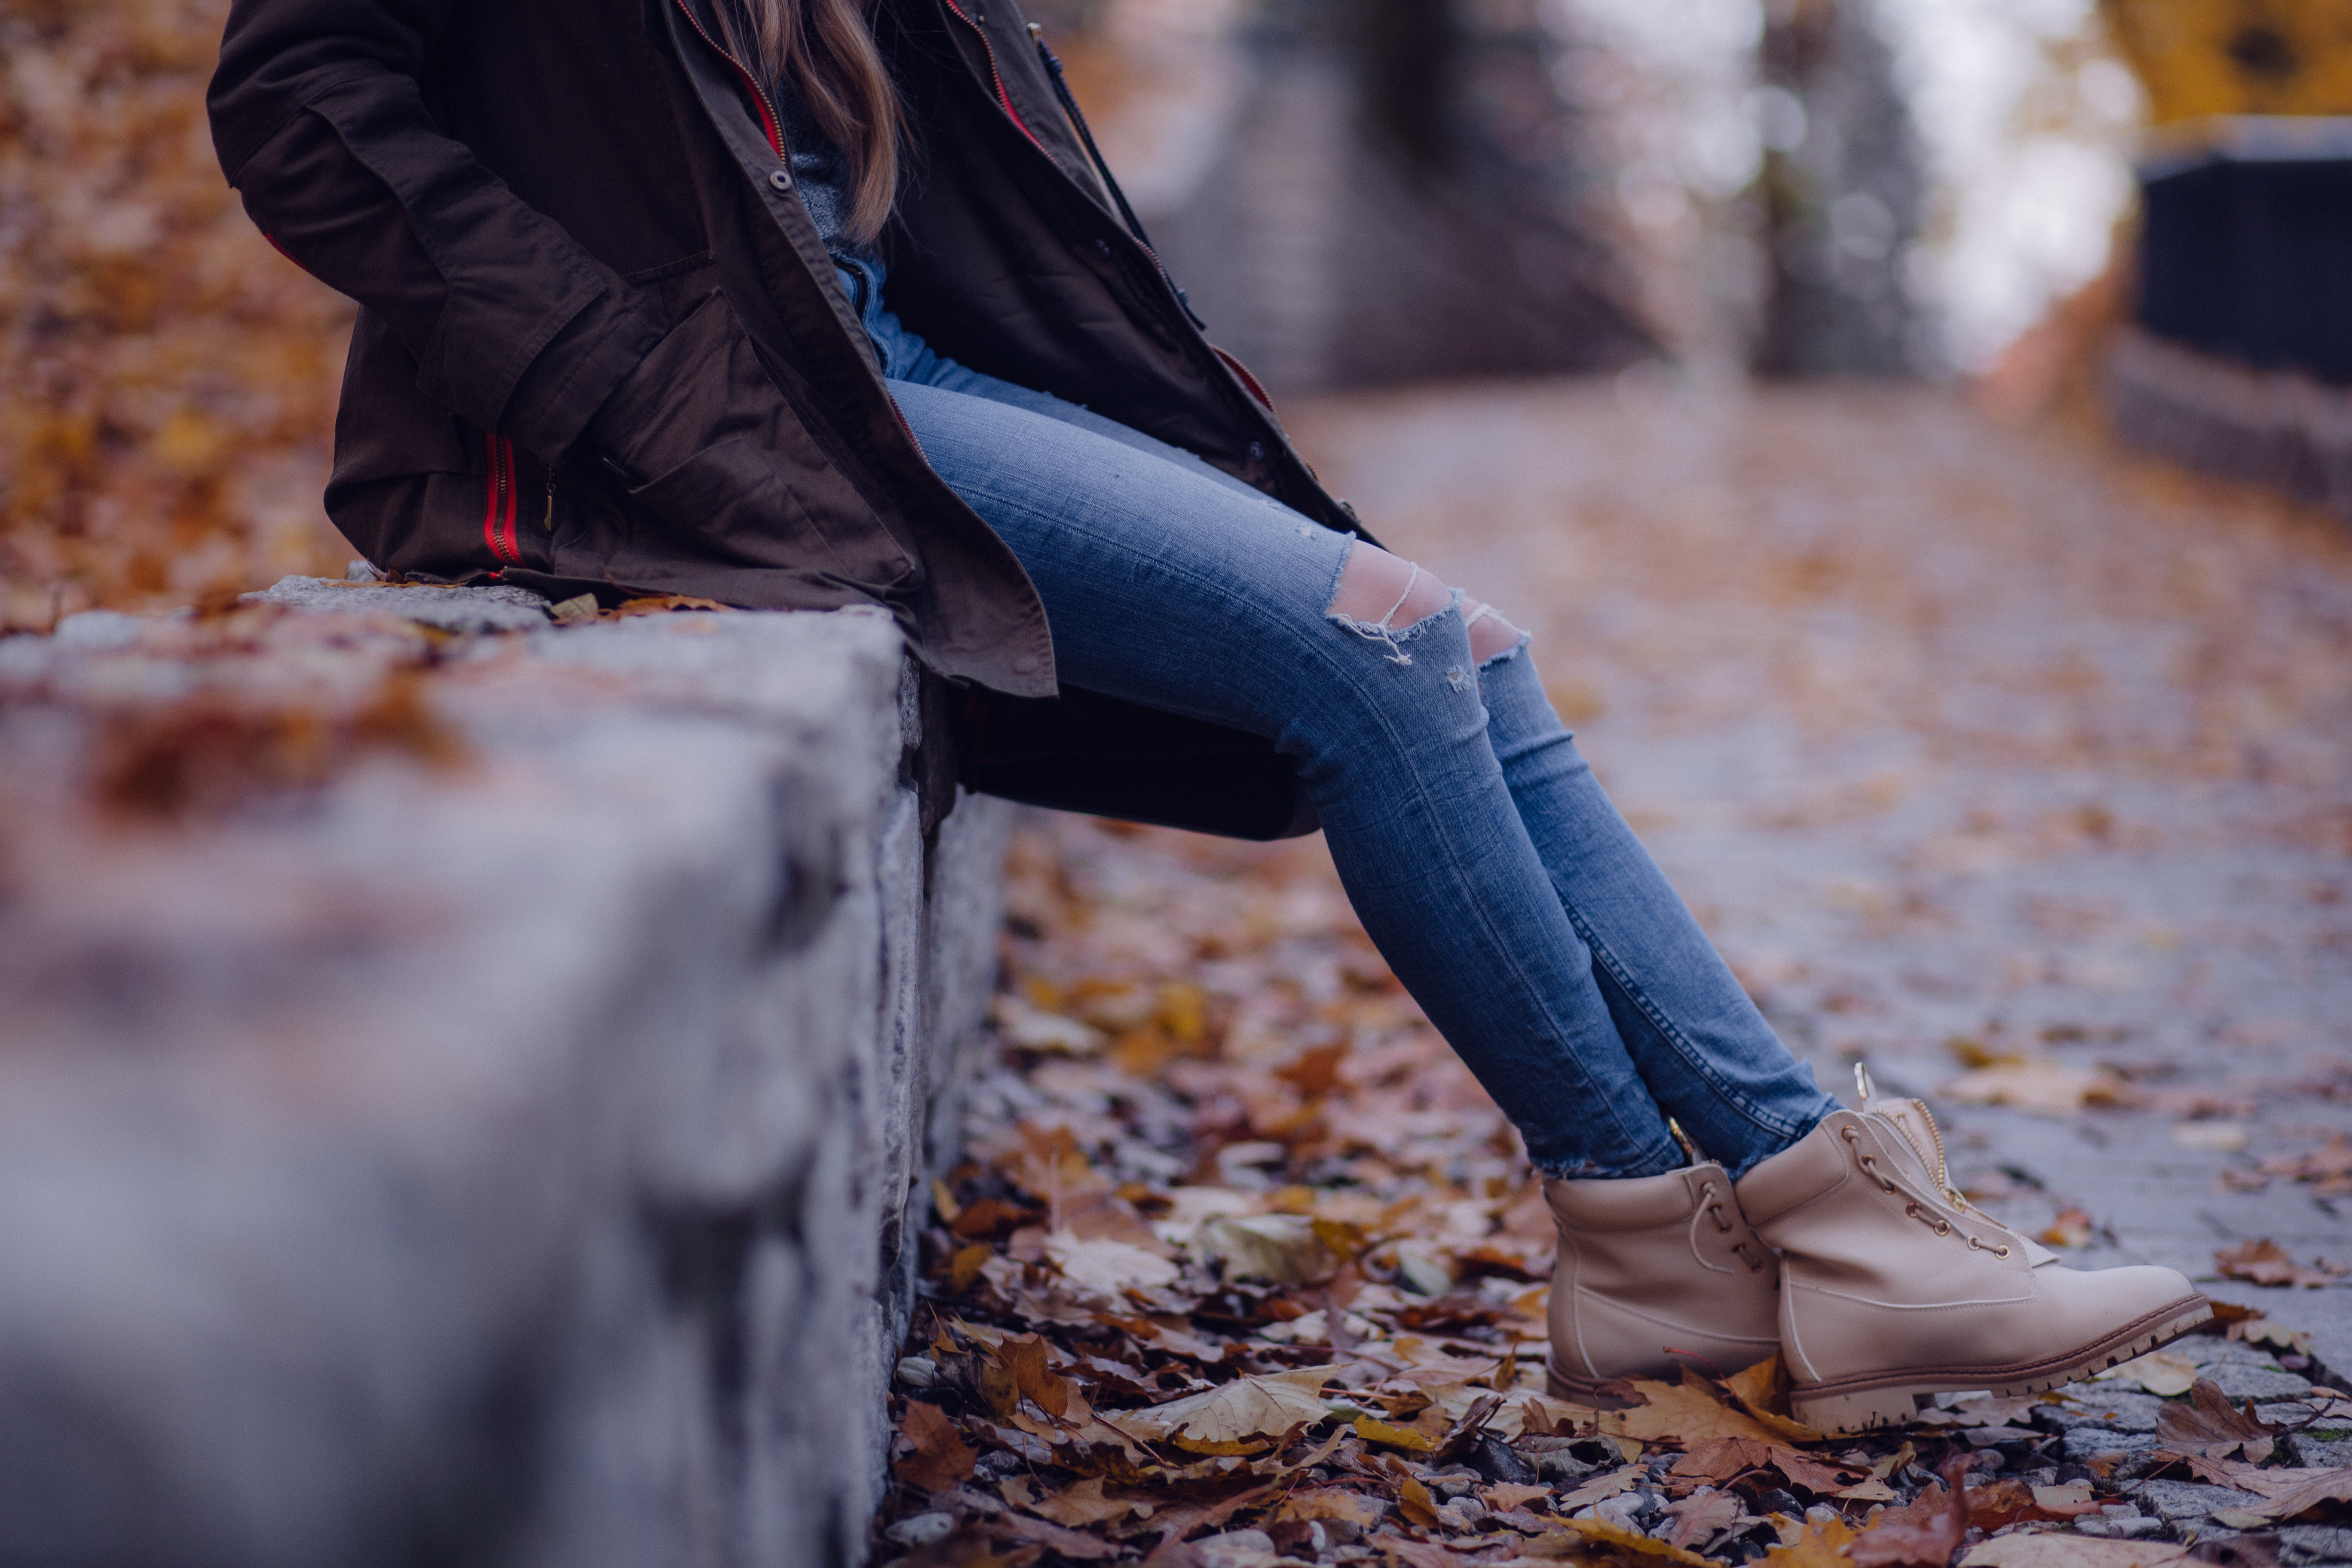 Low shot of woman wearing jeans and a fall coat